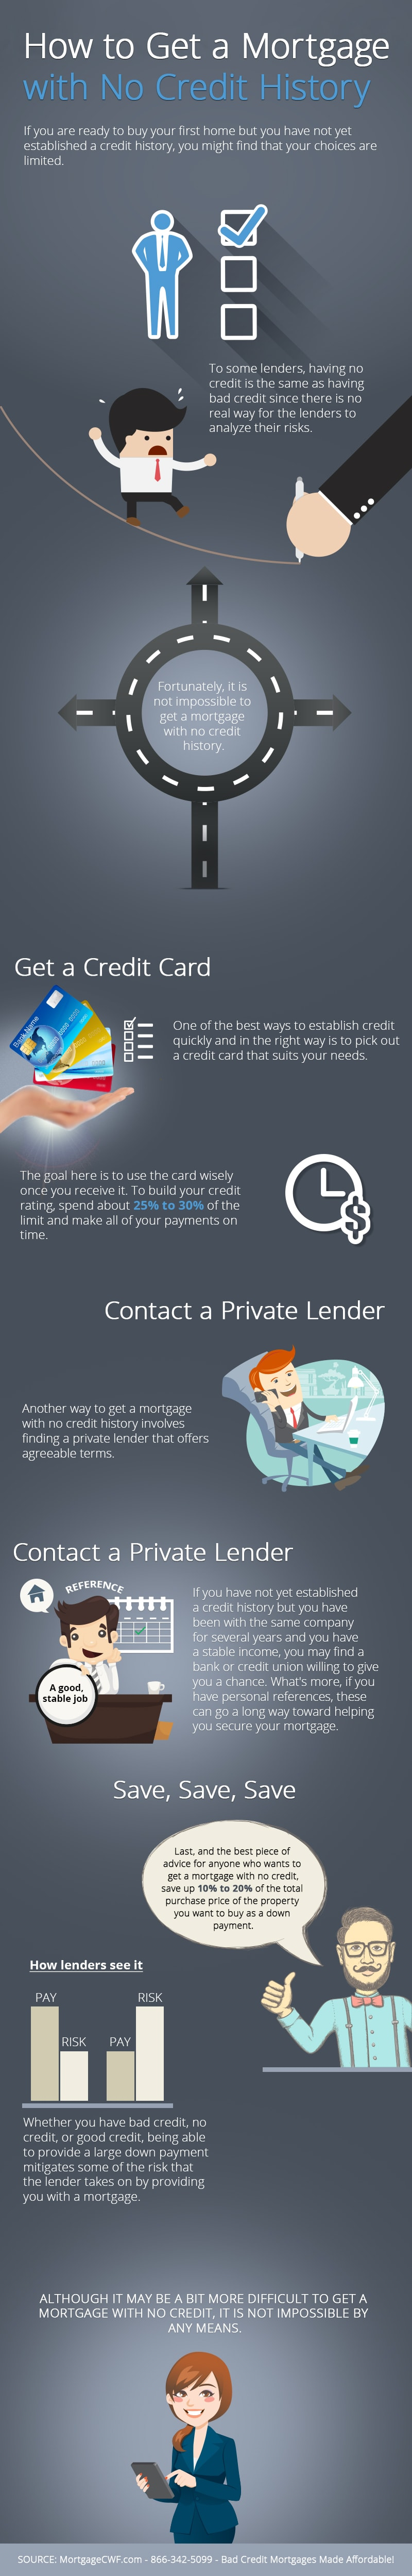 Tips on Getting a Mortgage with No Credit History - Infographic